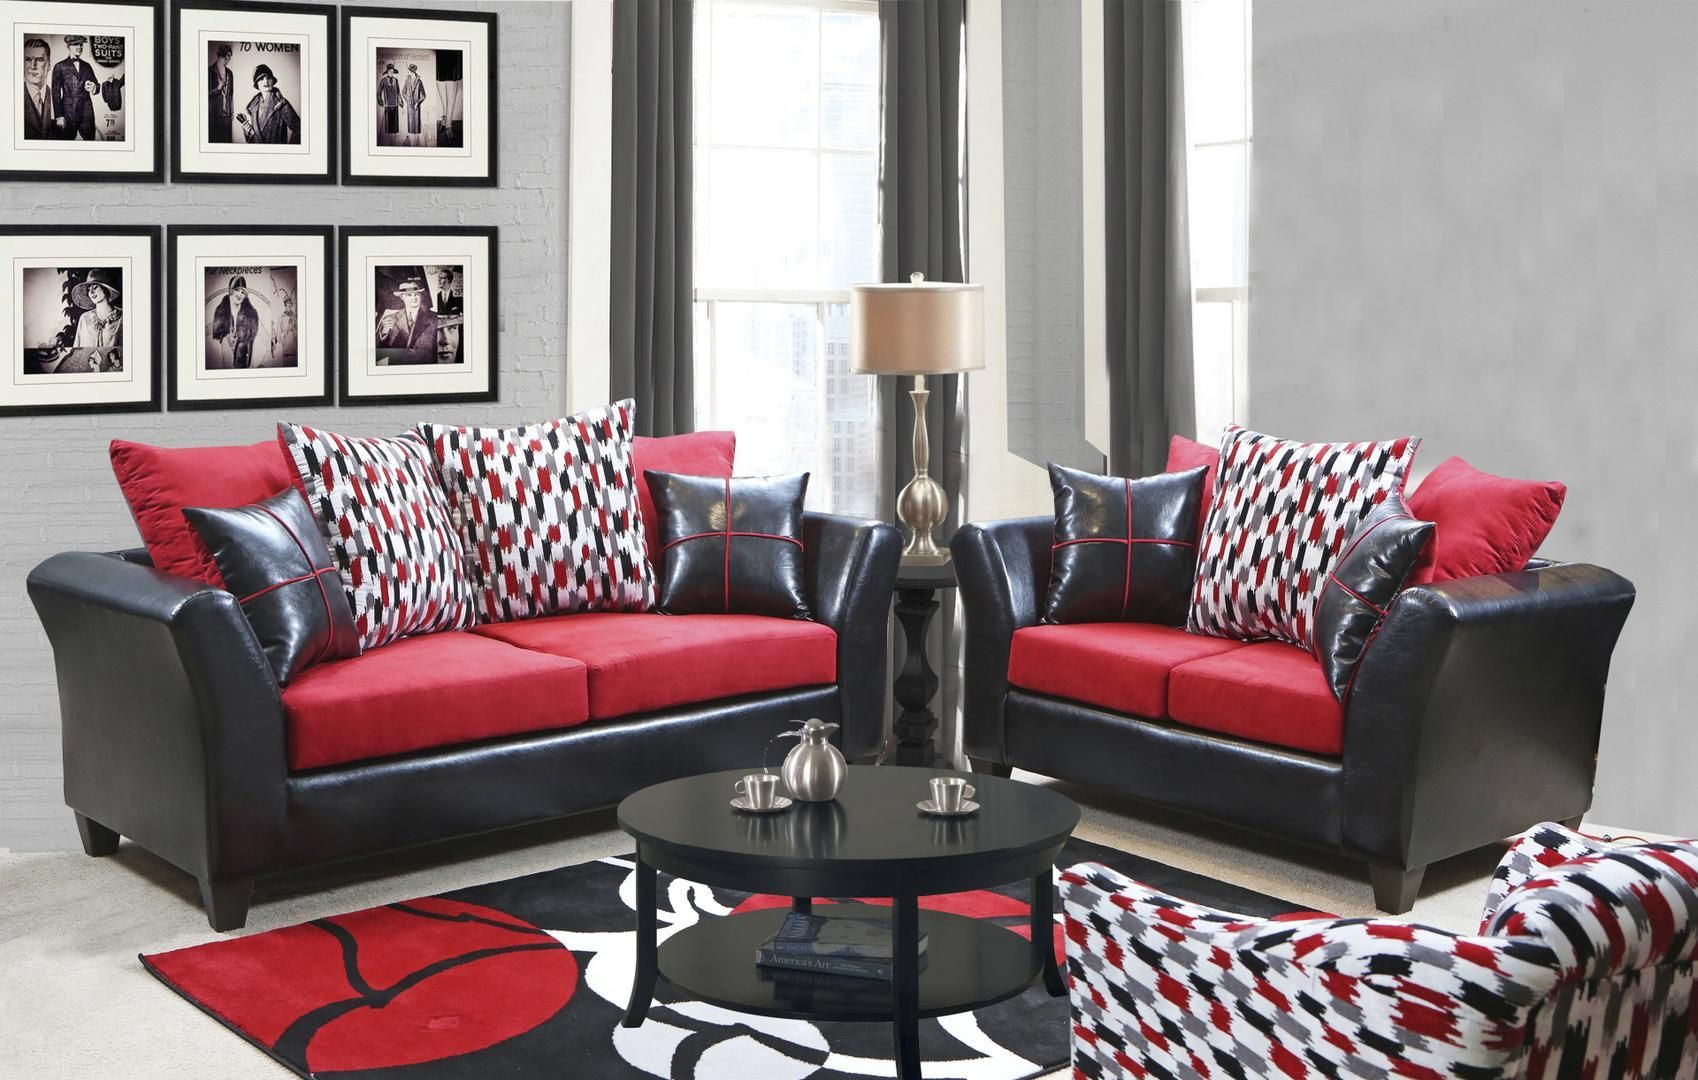 Chelsea Home Furniture 294bb2set 699 99 In 2020 Black And Red Living Room Living Room Decor Cozy Red Chair Living Room #red #and #black #living #room #furniture #sets